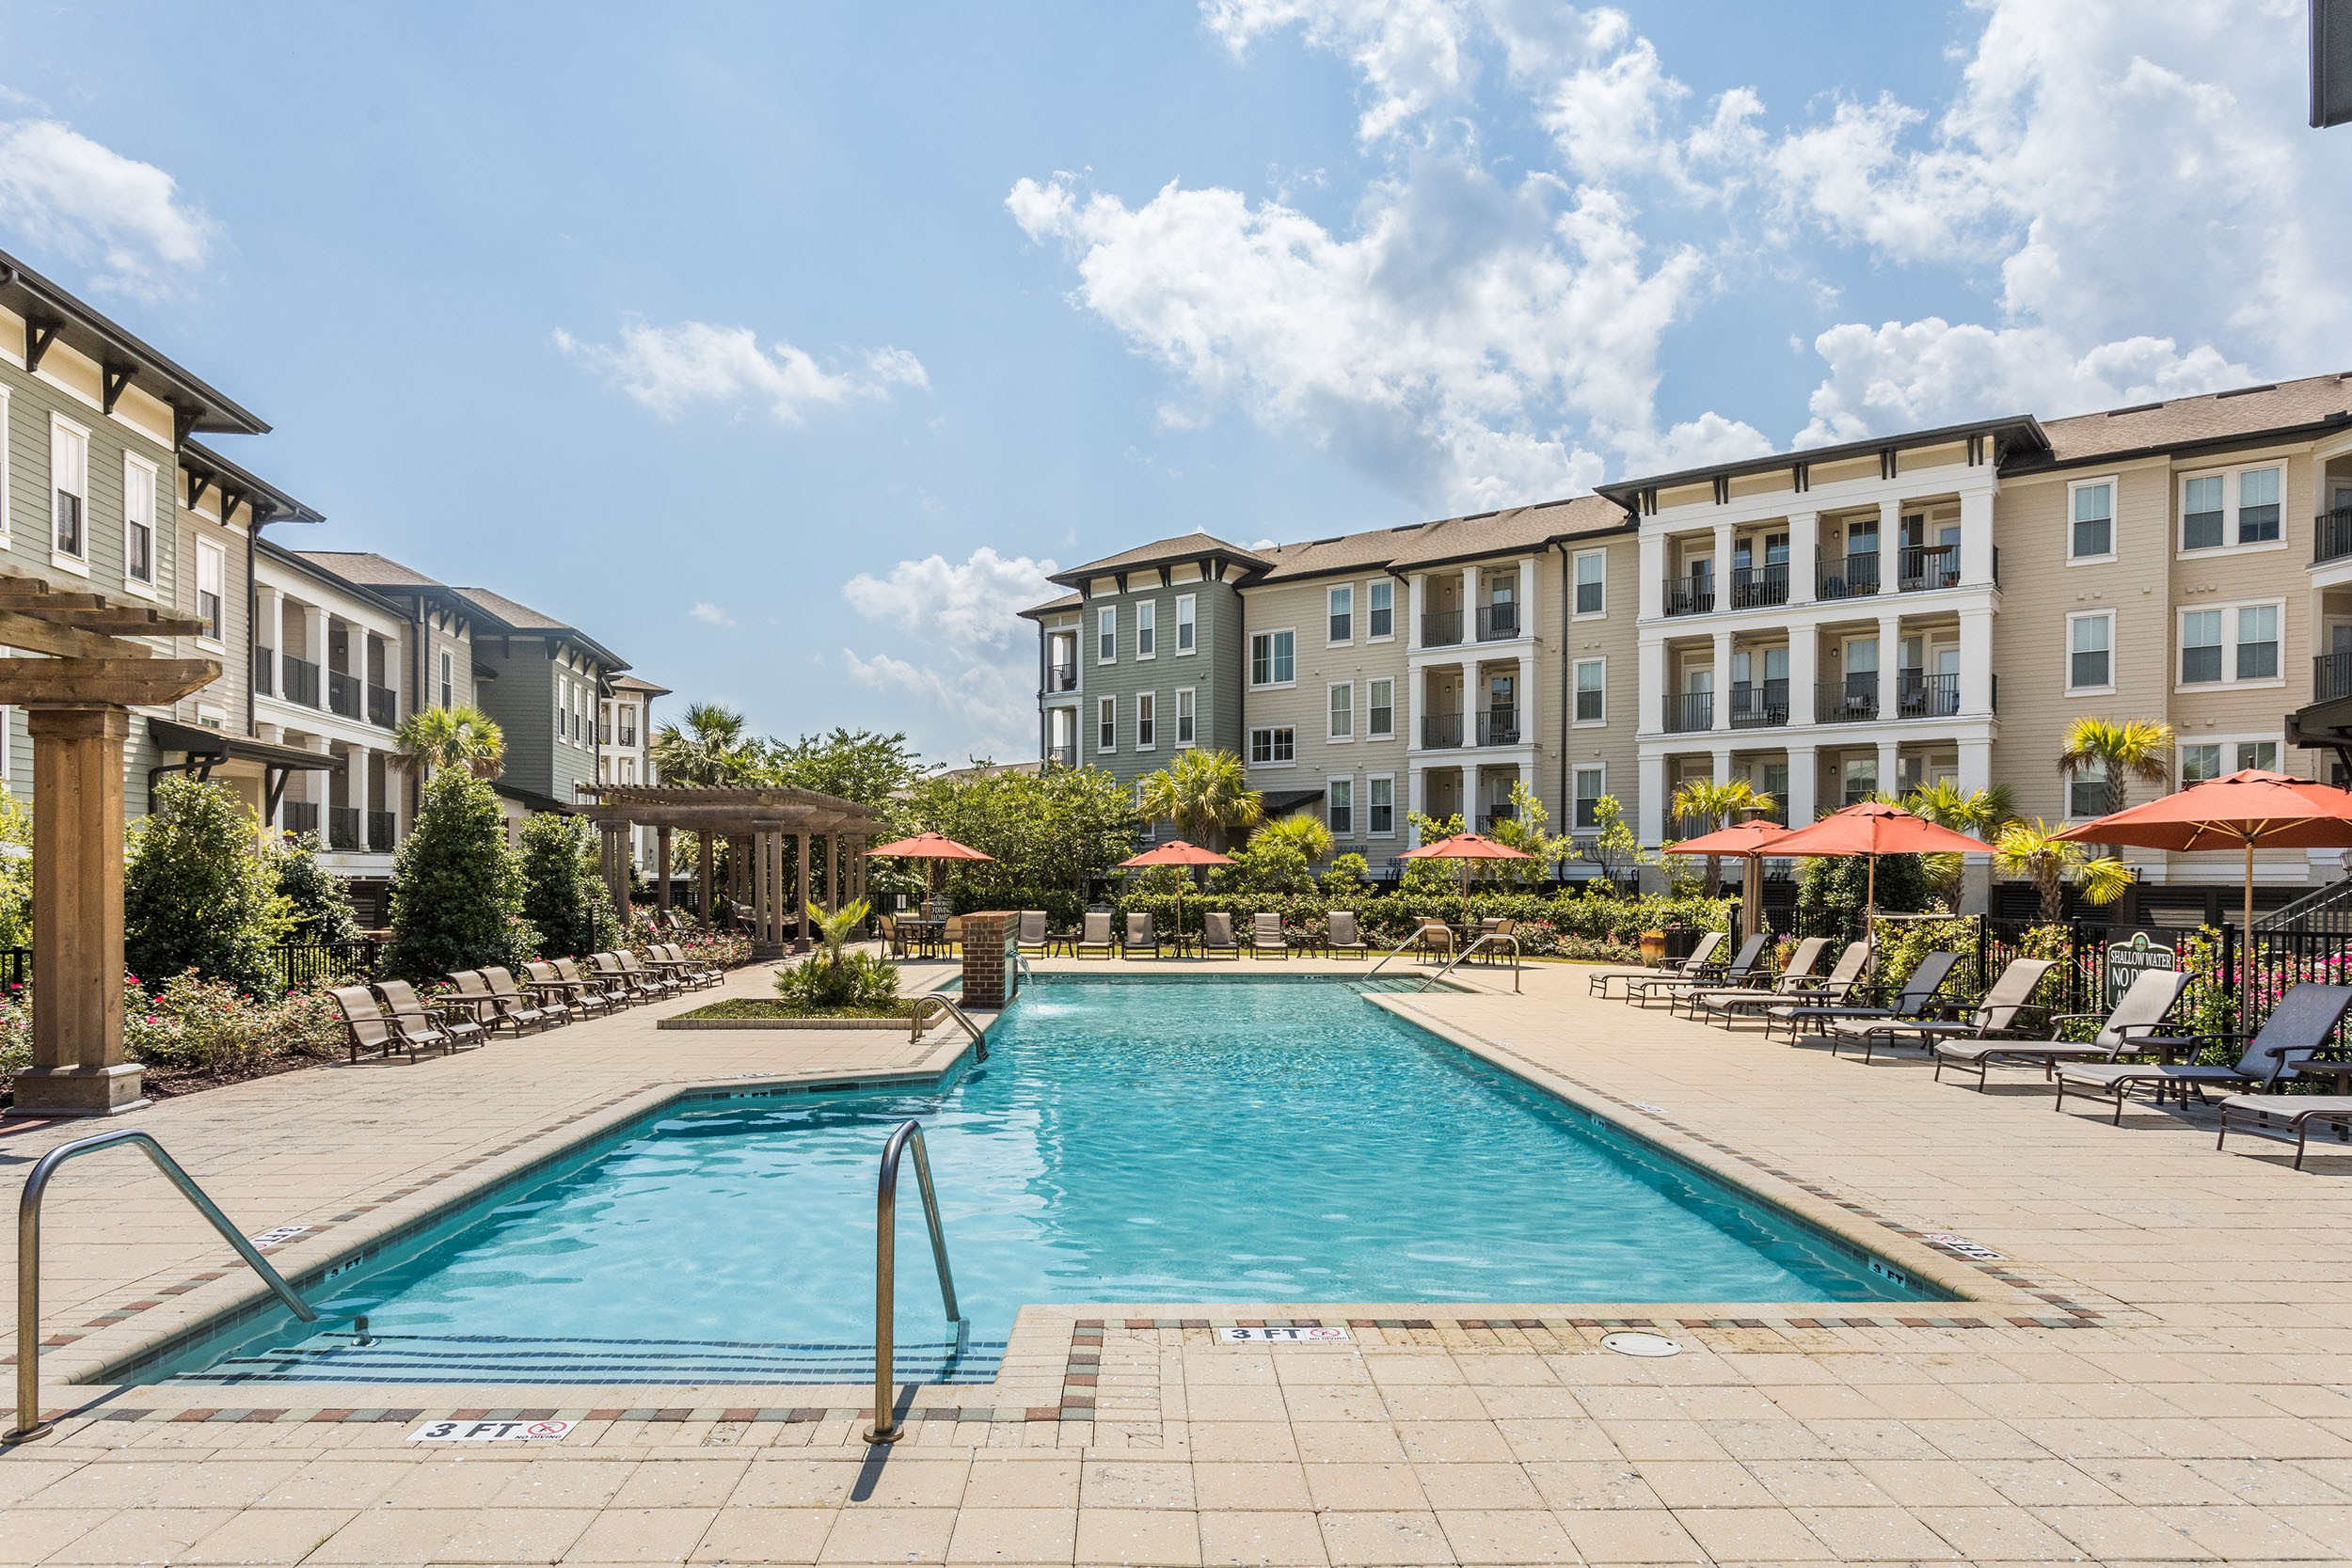 Apartments Near MUSC Talison Row Apartment Homes for Medical University of South Carolina Students in Charleston, SC